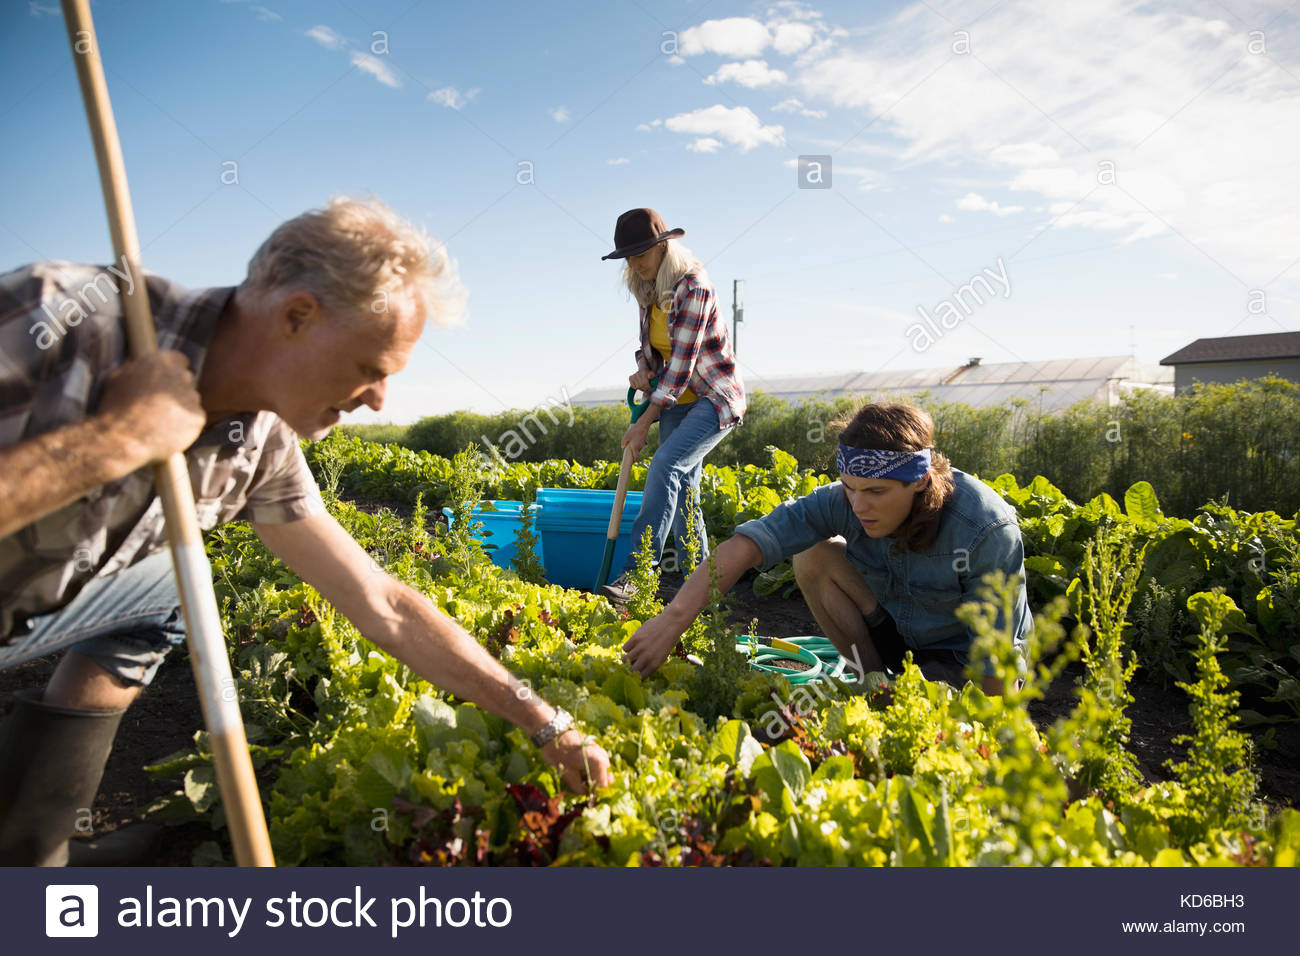 Farmers working in vegetable crop on sunny farm Stock Photo